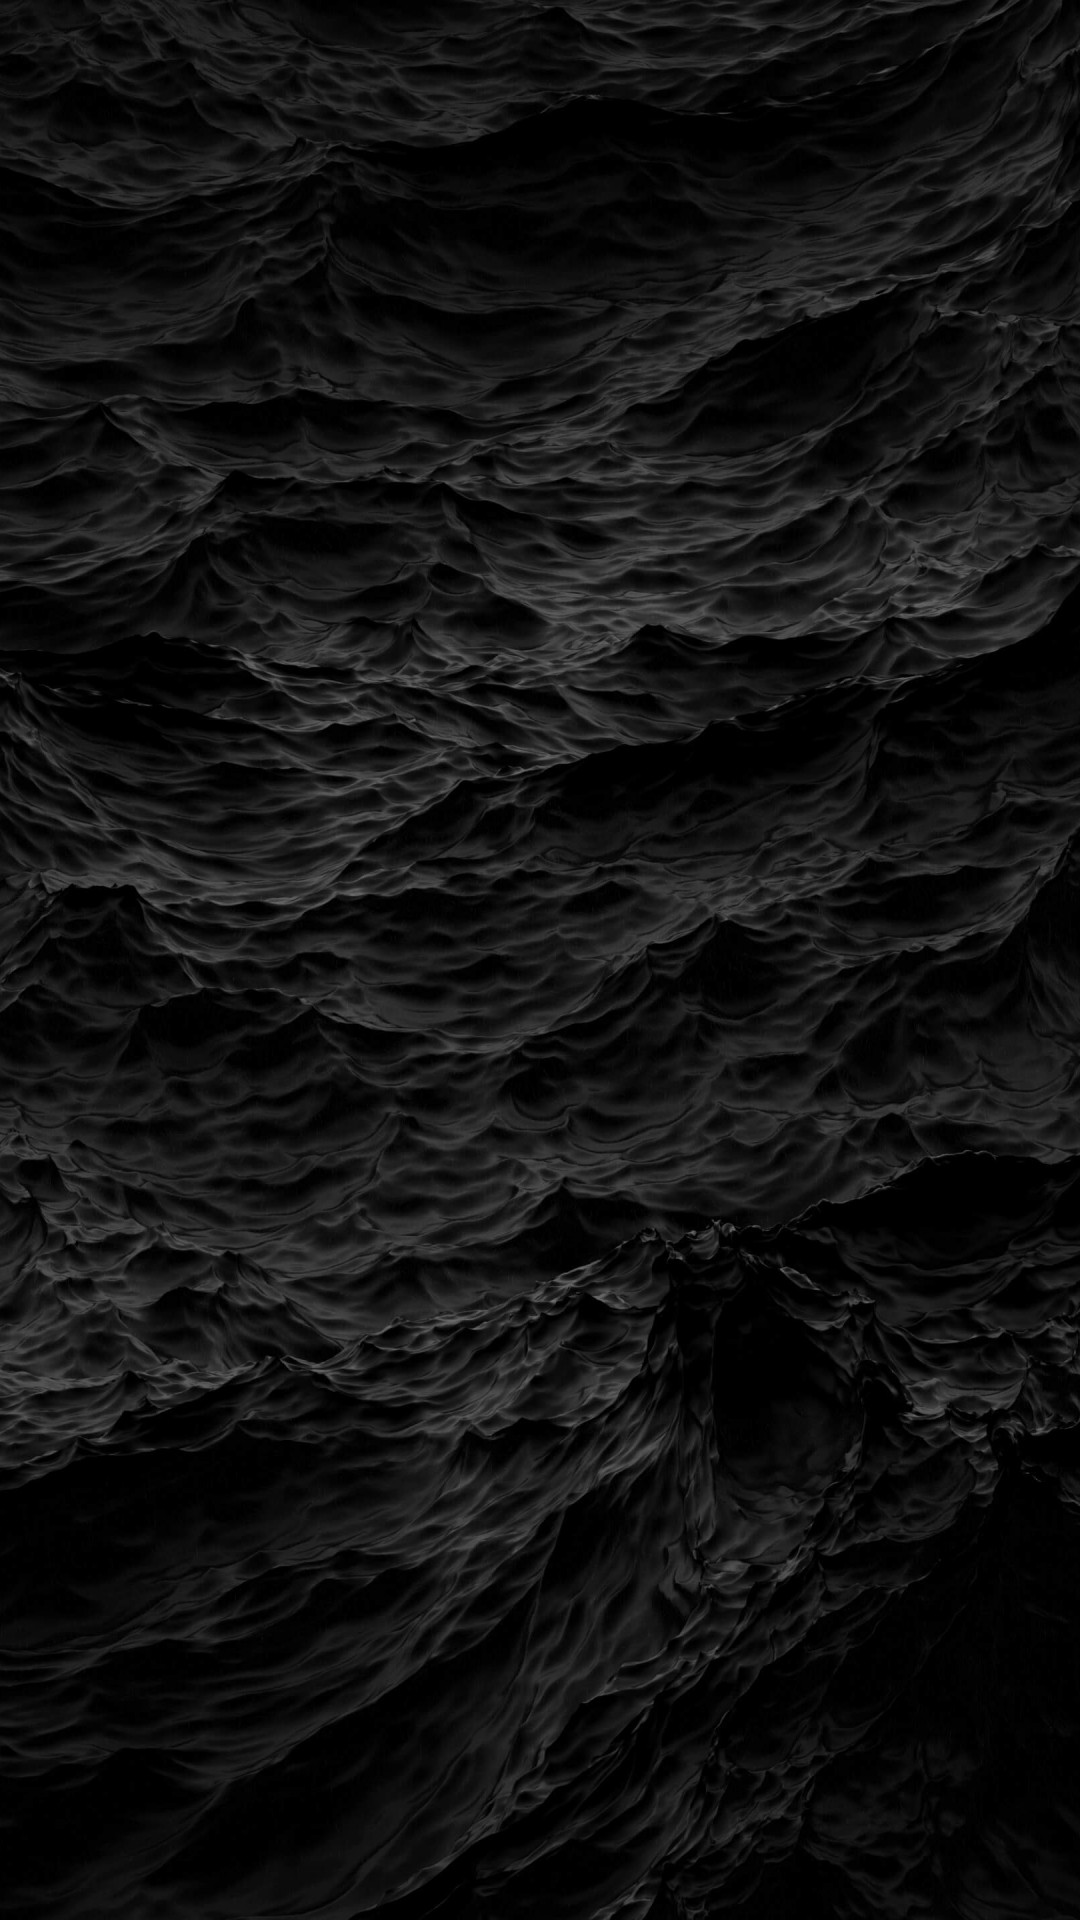 Black Waves Wallpaper for SAMSUNG Galaxy S4